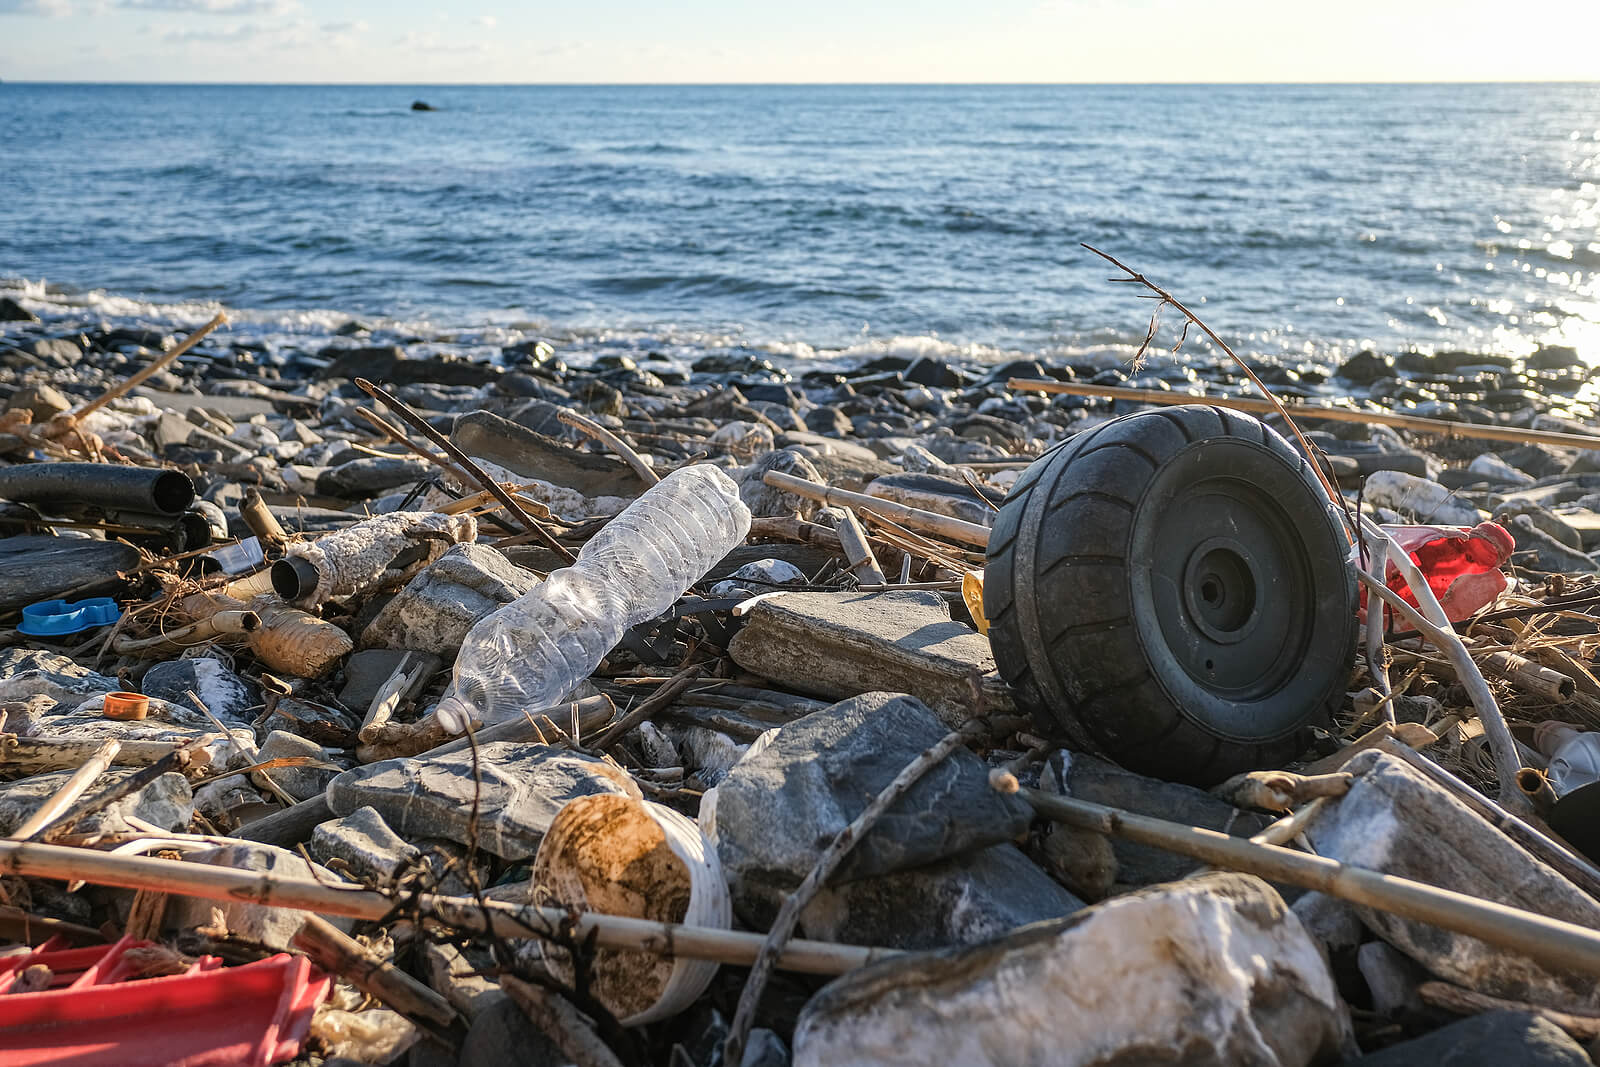 Waste on a beach including water bottles, tyres and other plastics.